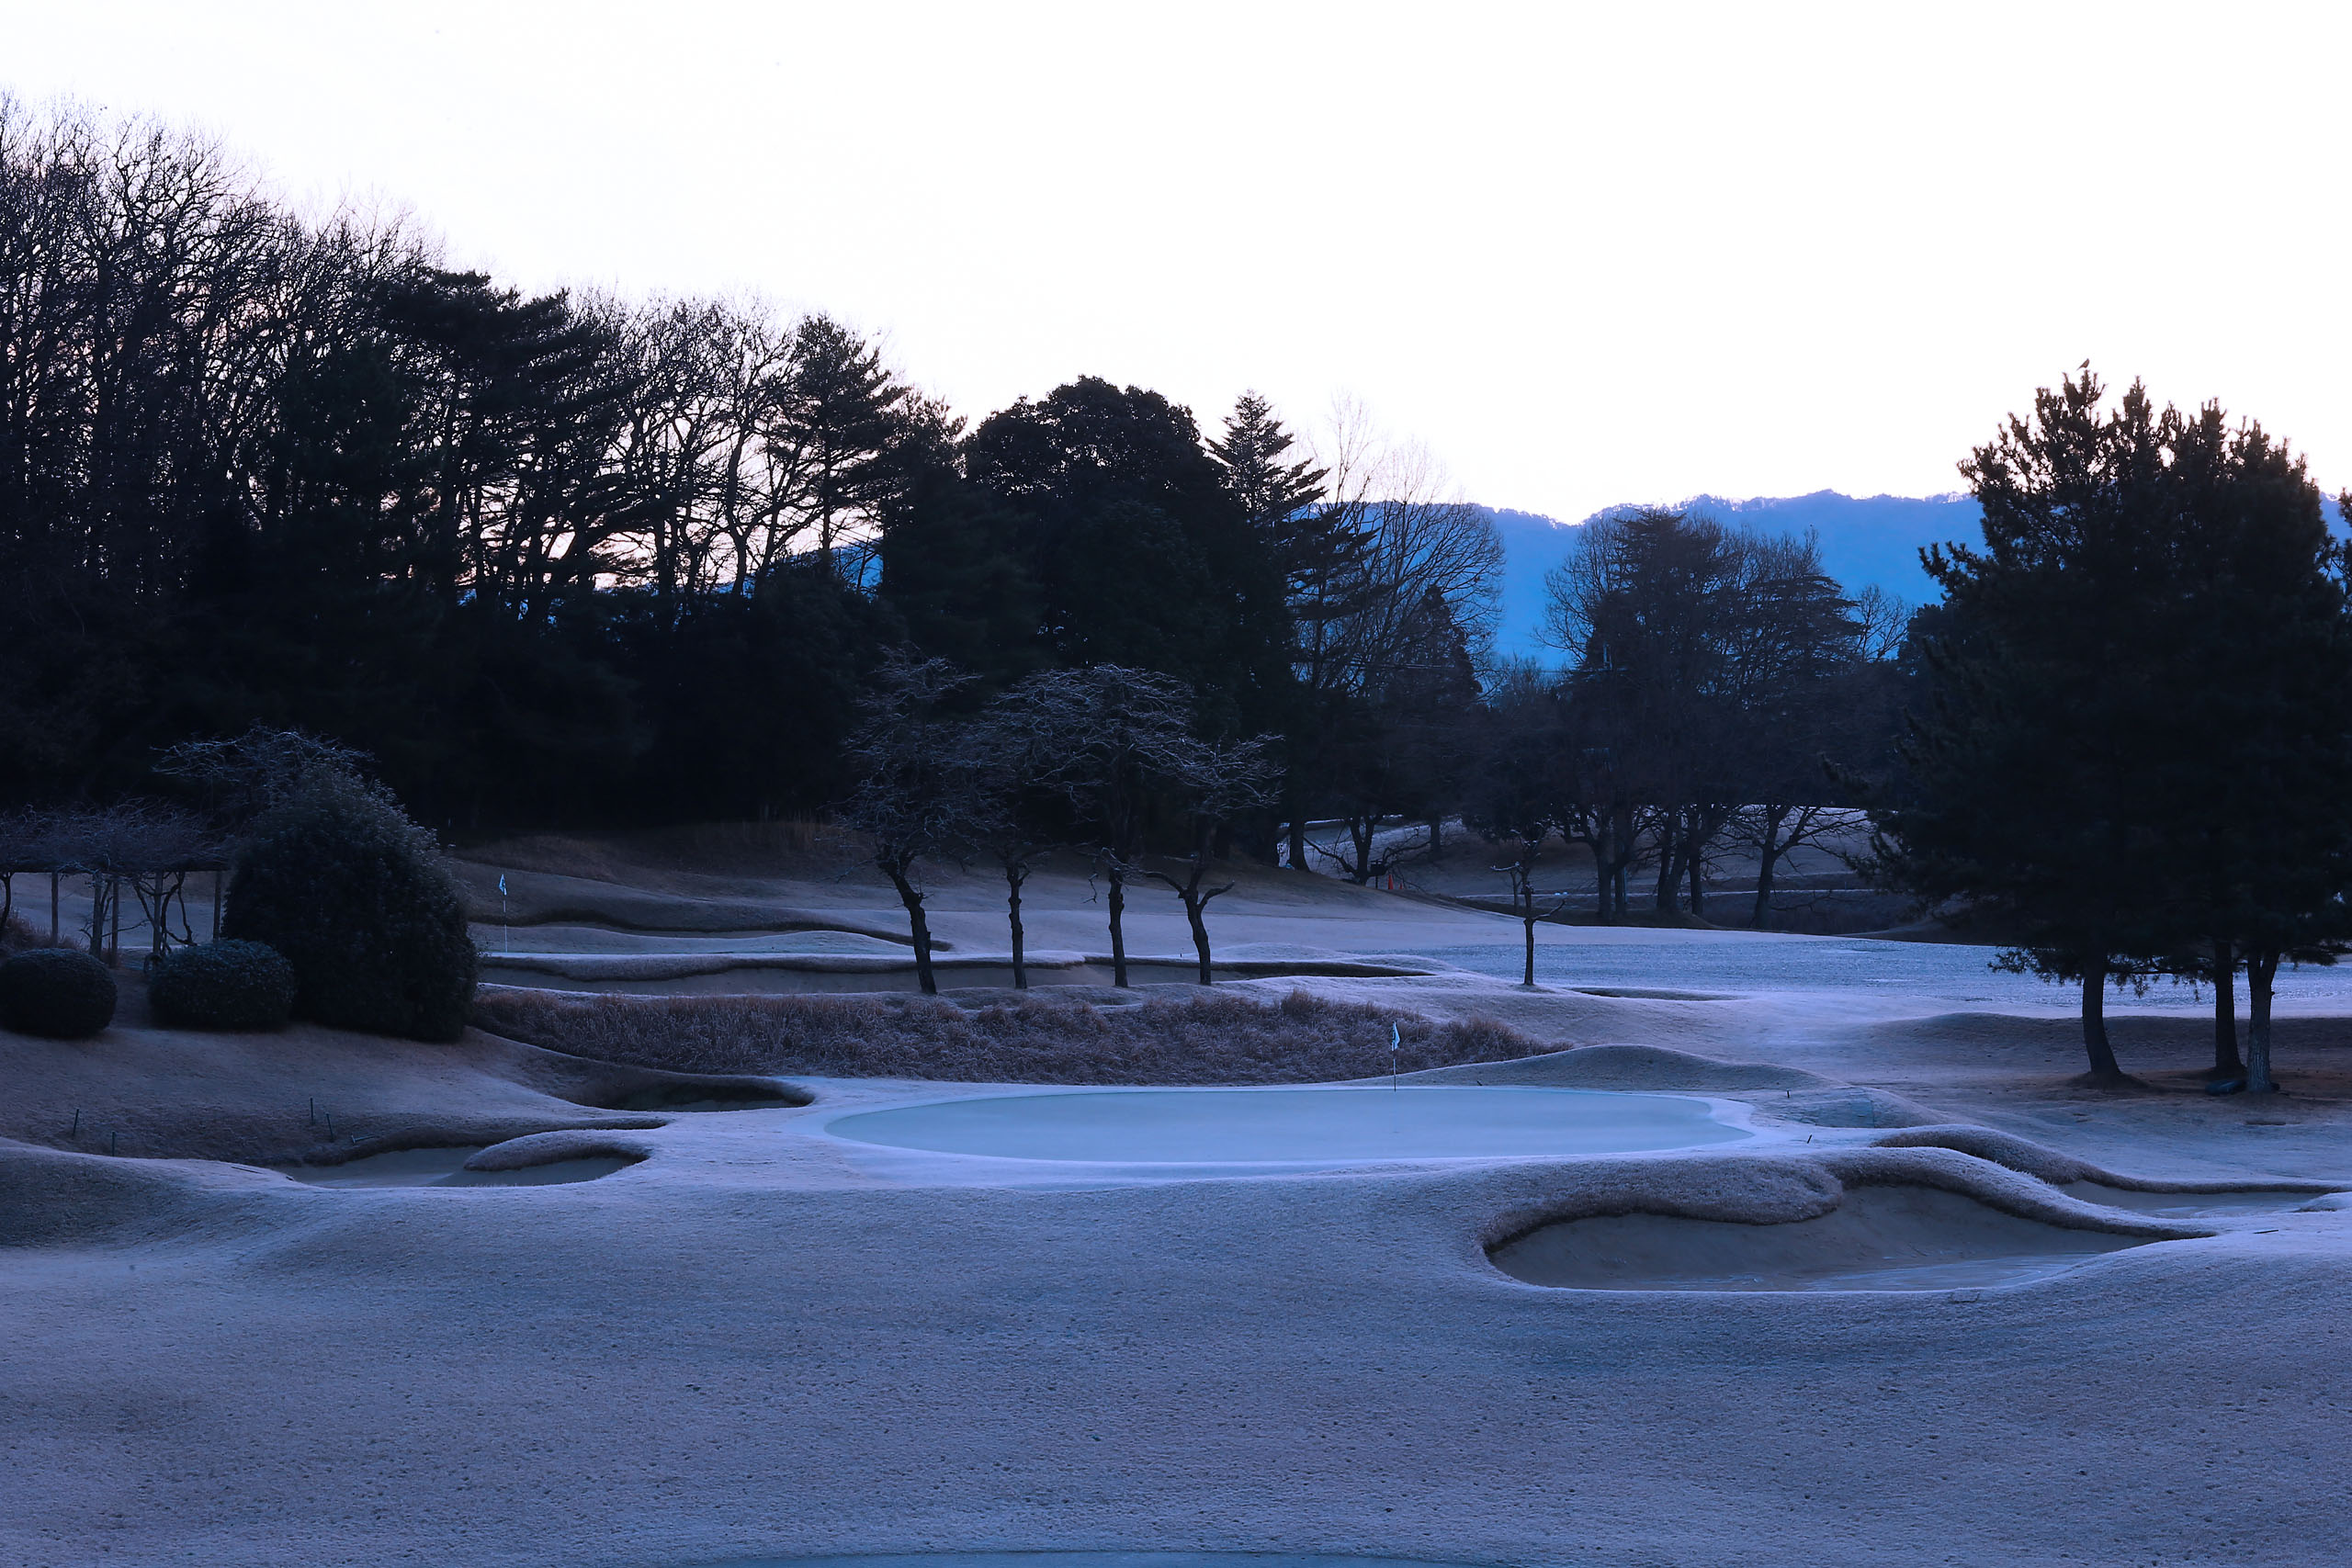 The third hole at Naruo Golf Club, a classic course in Japan that will celebrate its 100th anniversary in 2020. The frost on the course in the middle of winter is very beautiful. Photo by Taku Miyamoto